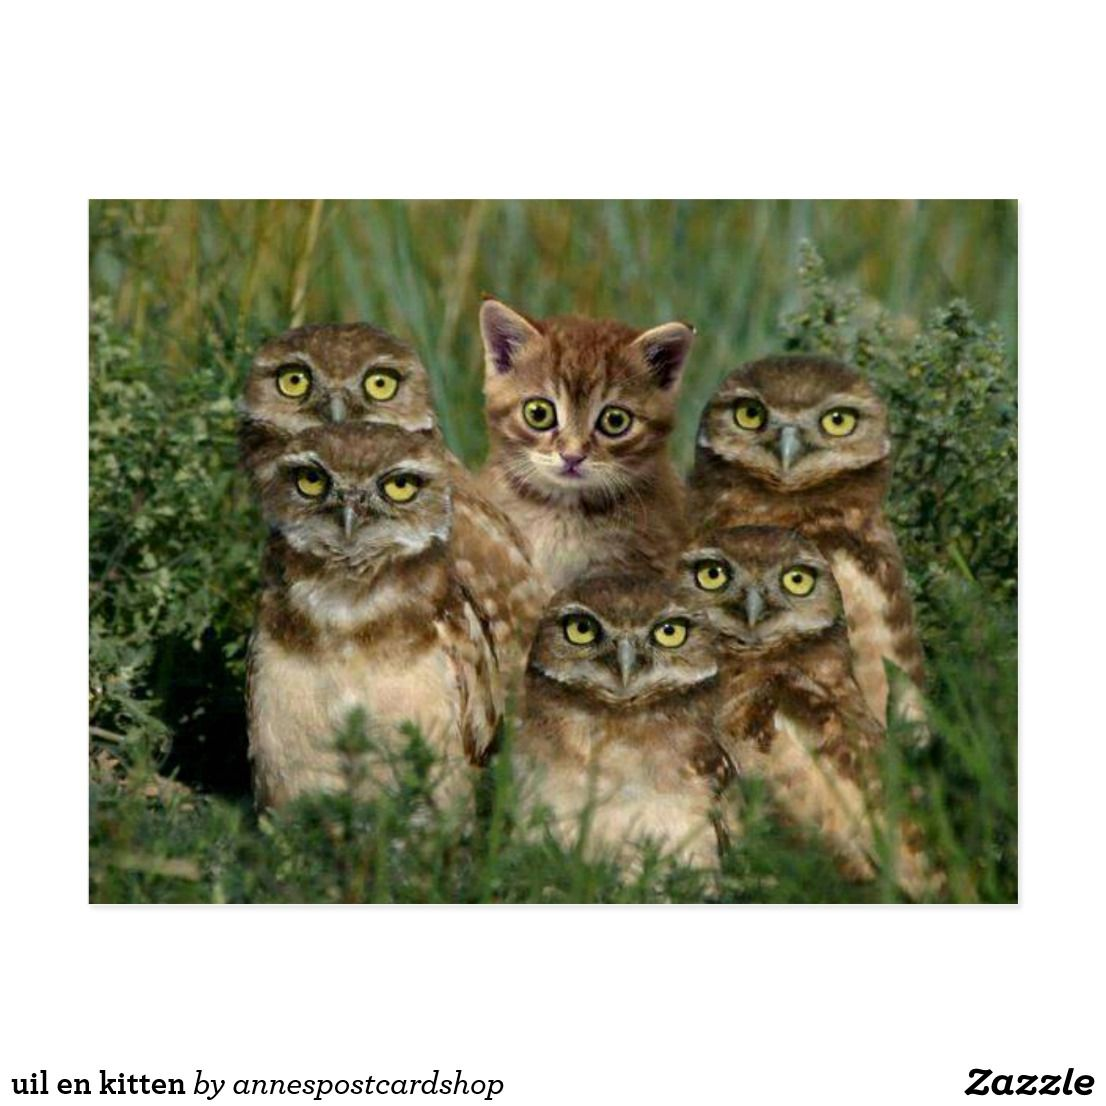 Owl And Kitten Postcard Zazzle Com In 2020 Funny Animal Pictures Cute Animals Animals Friends